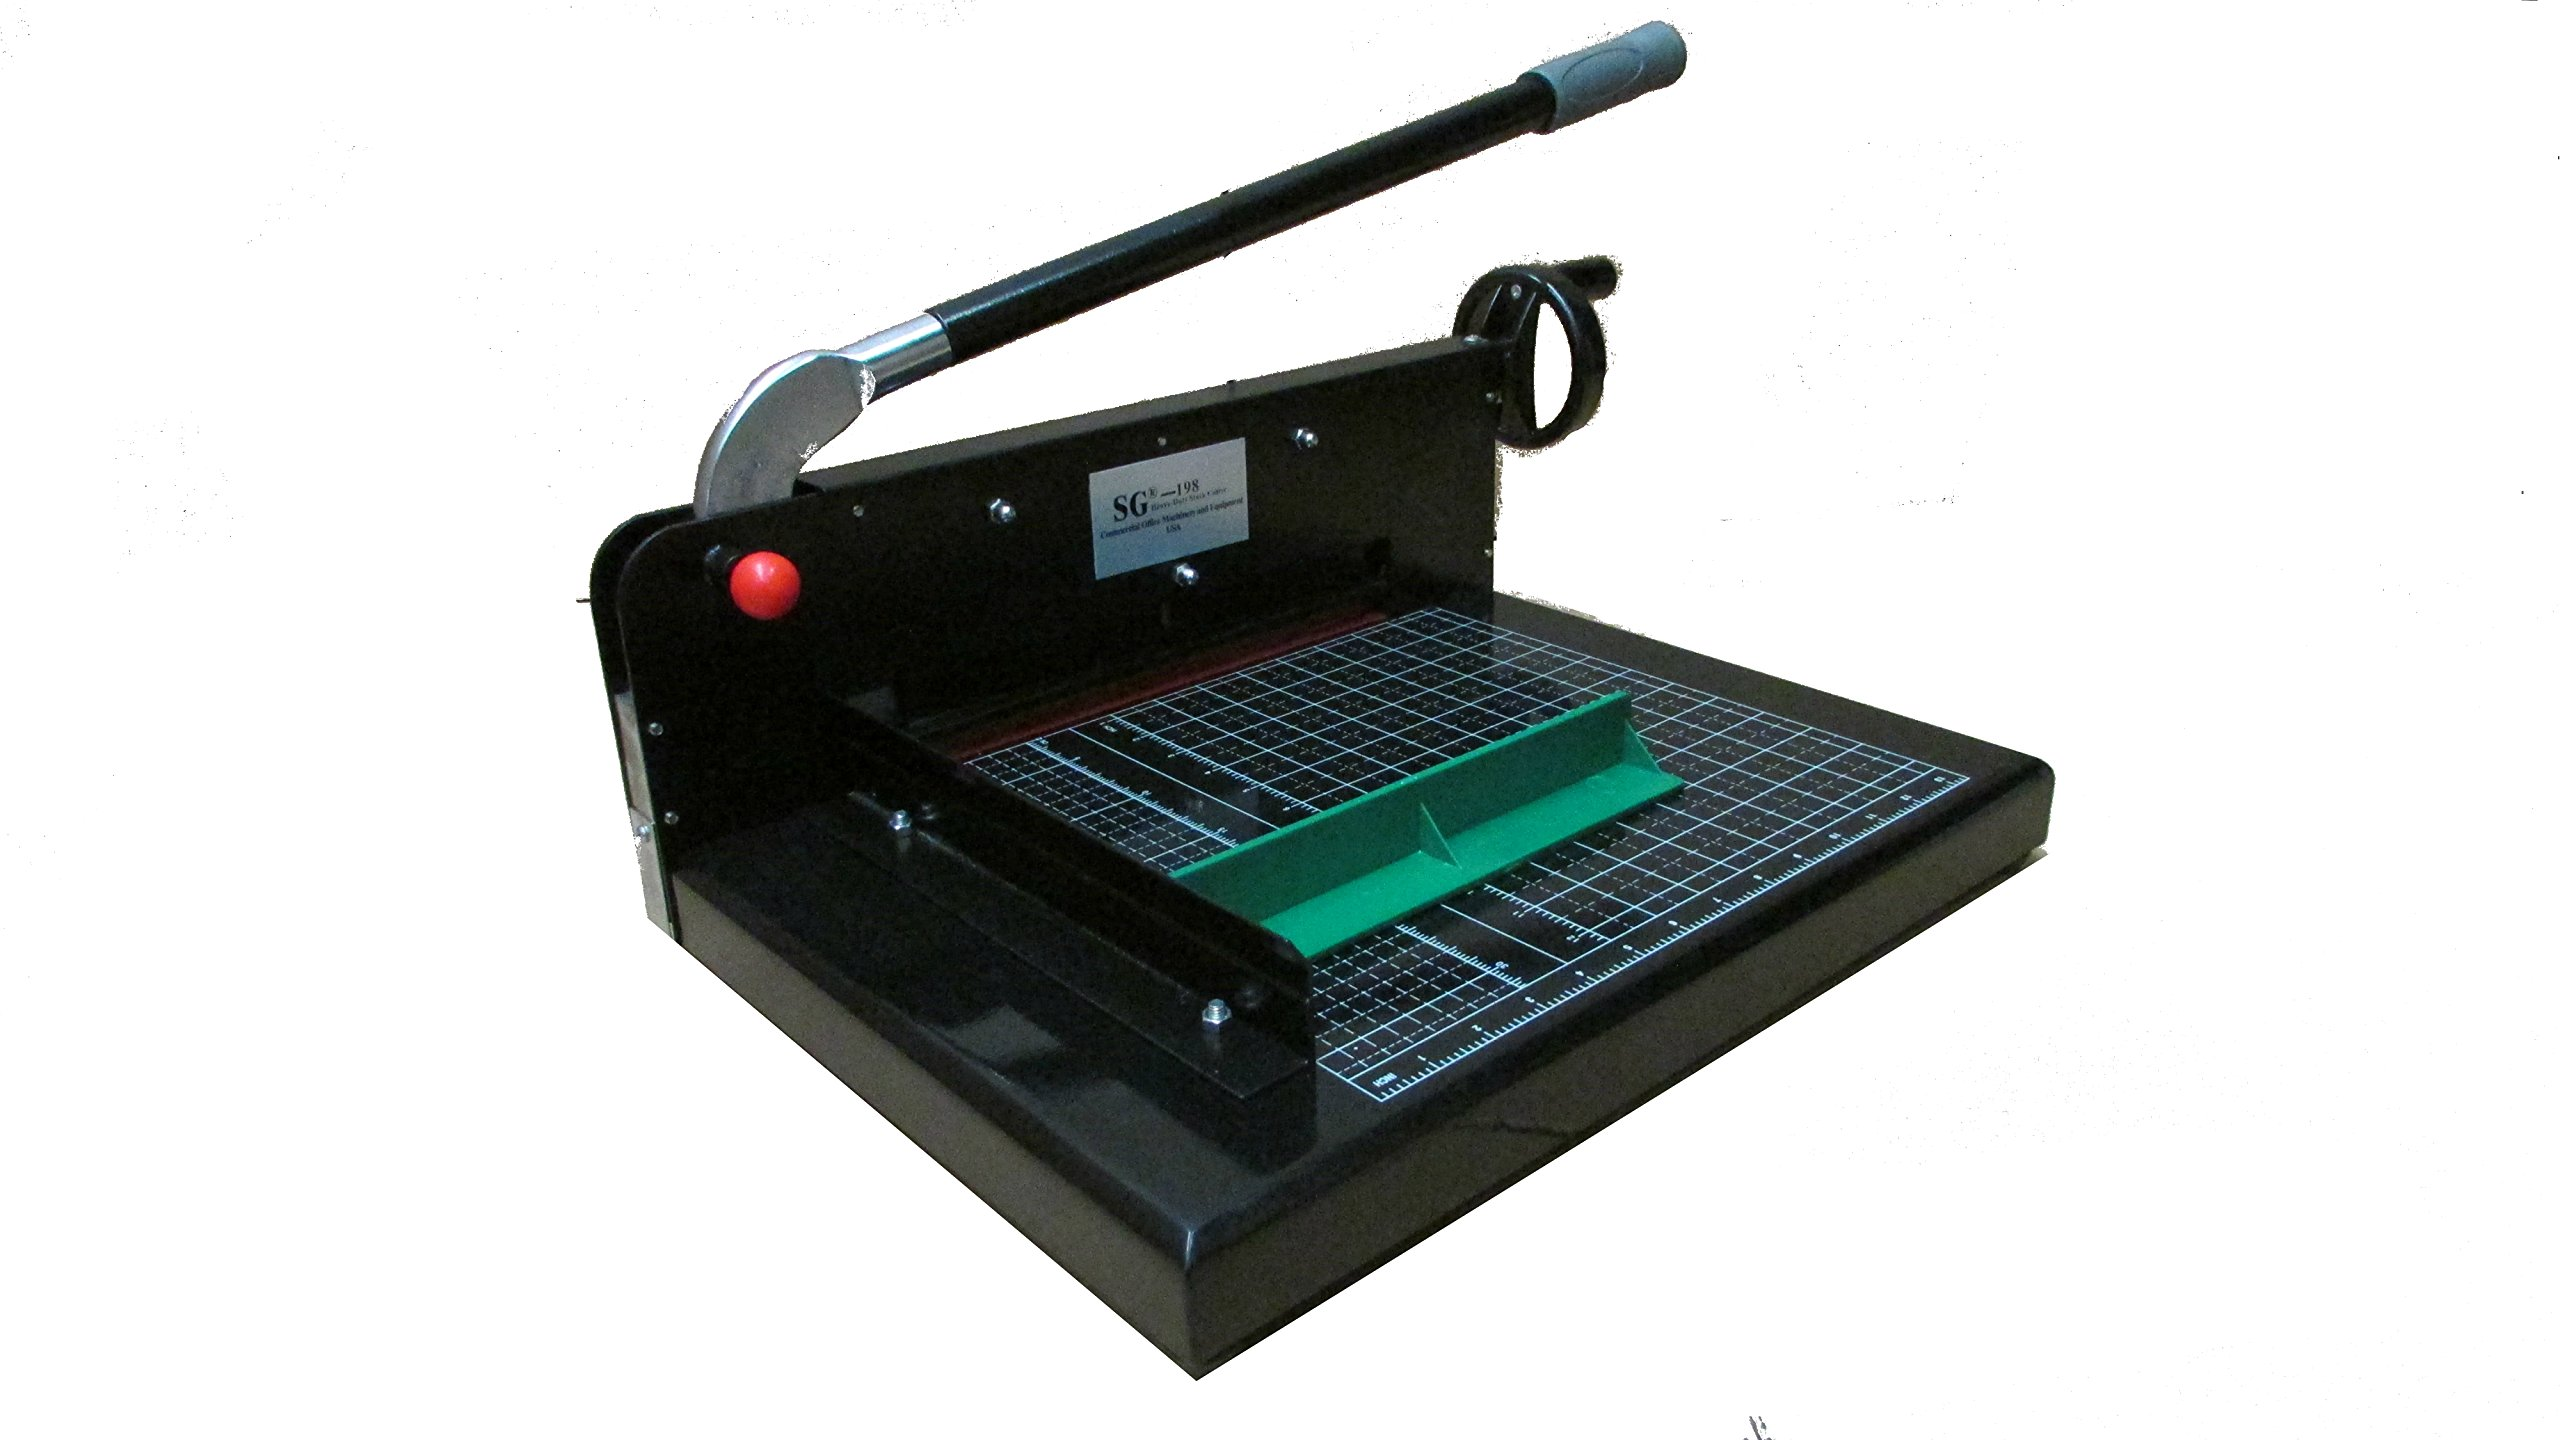 Guillotine Desktop Stack Paper Cutter Come SG -198-12'' Cutting Width by SG